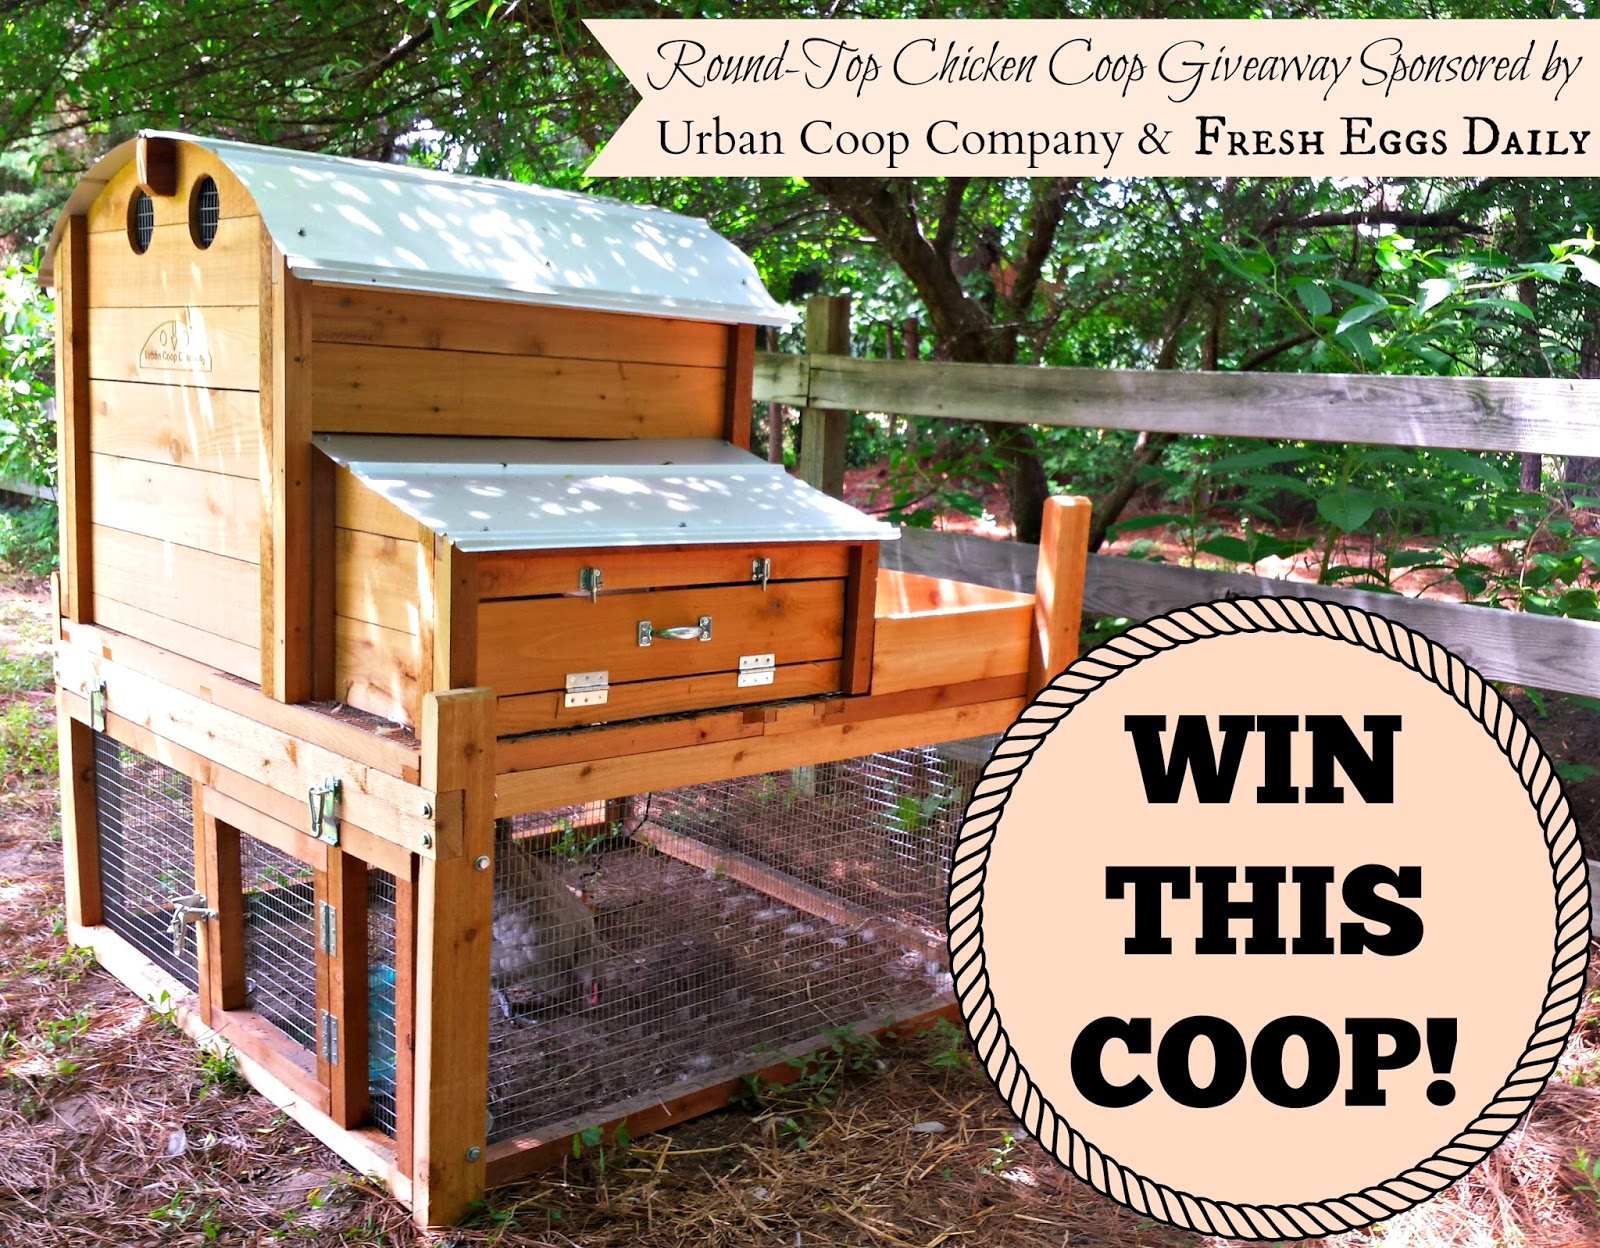 giveaway urban coop company round top chicken coop fresh eggs